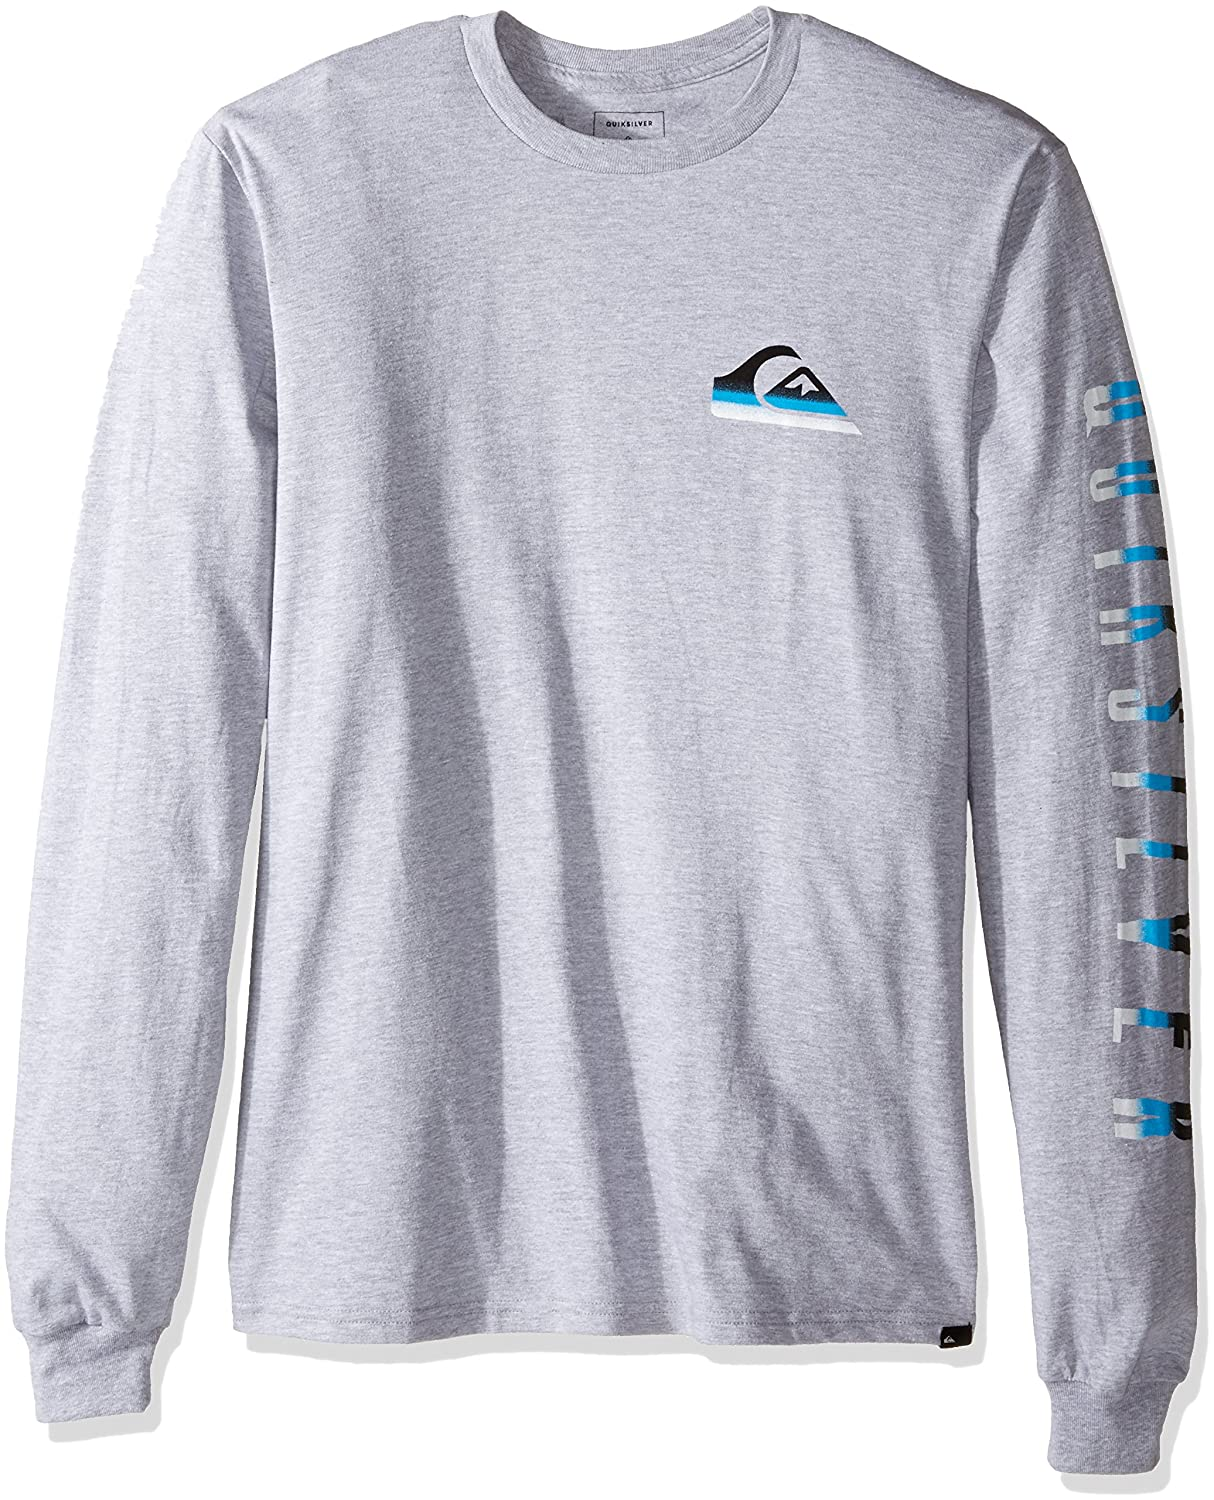 Quiksilver Men's New Neon Long Sleeve T-Shirt